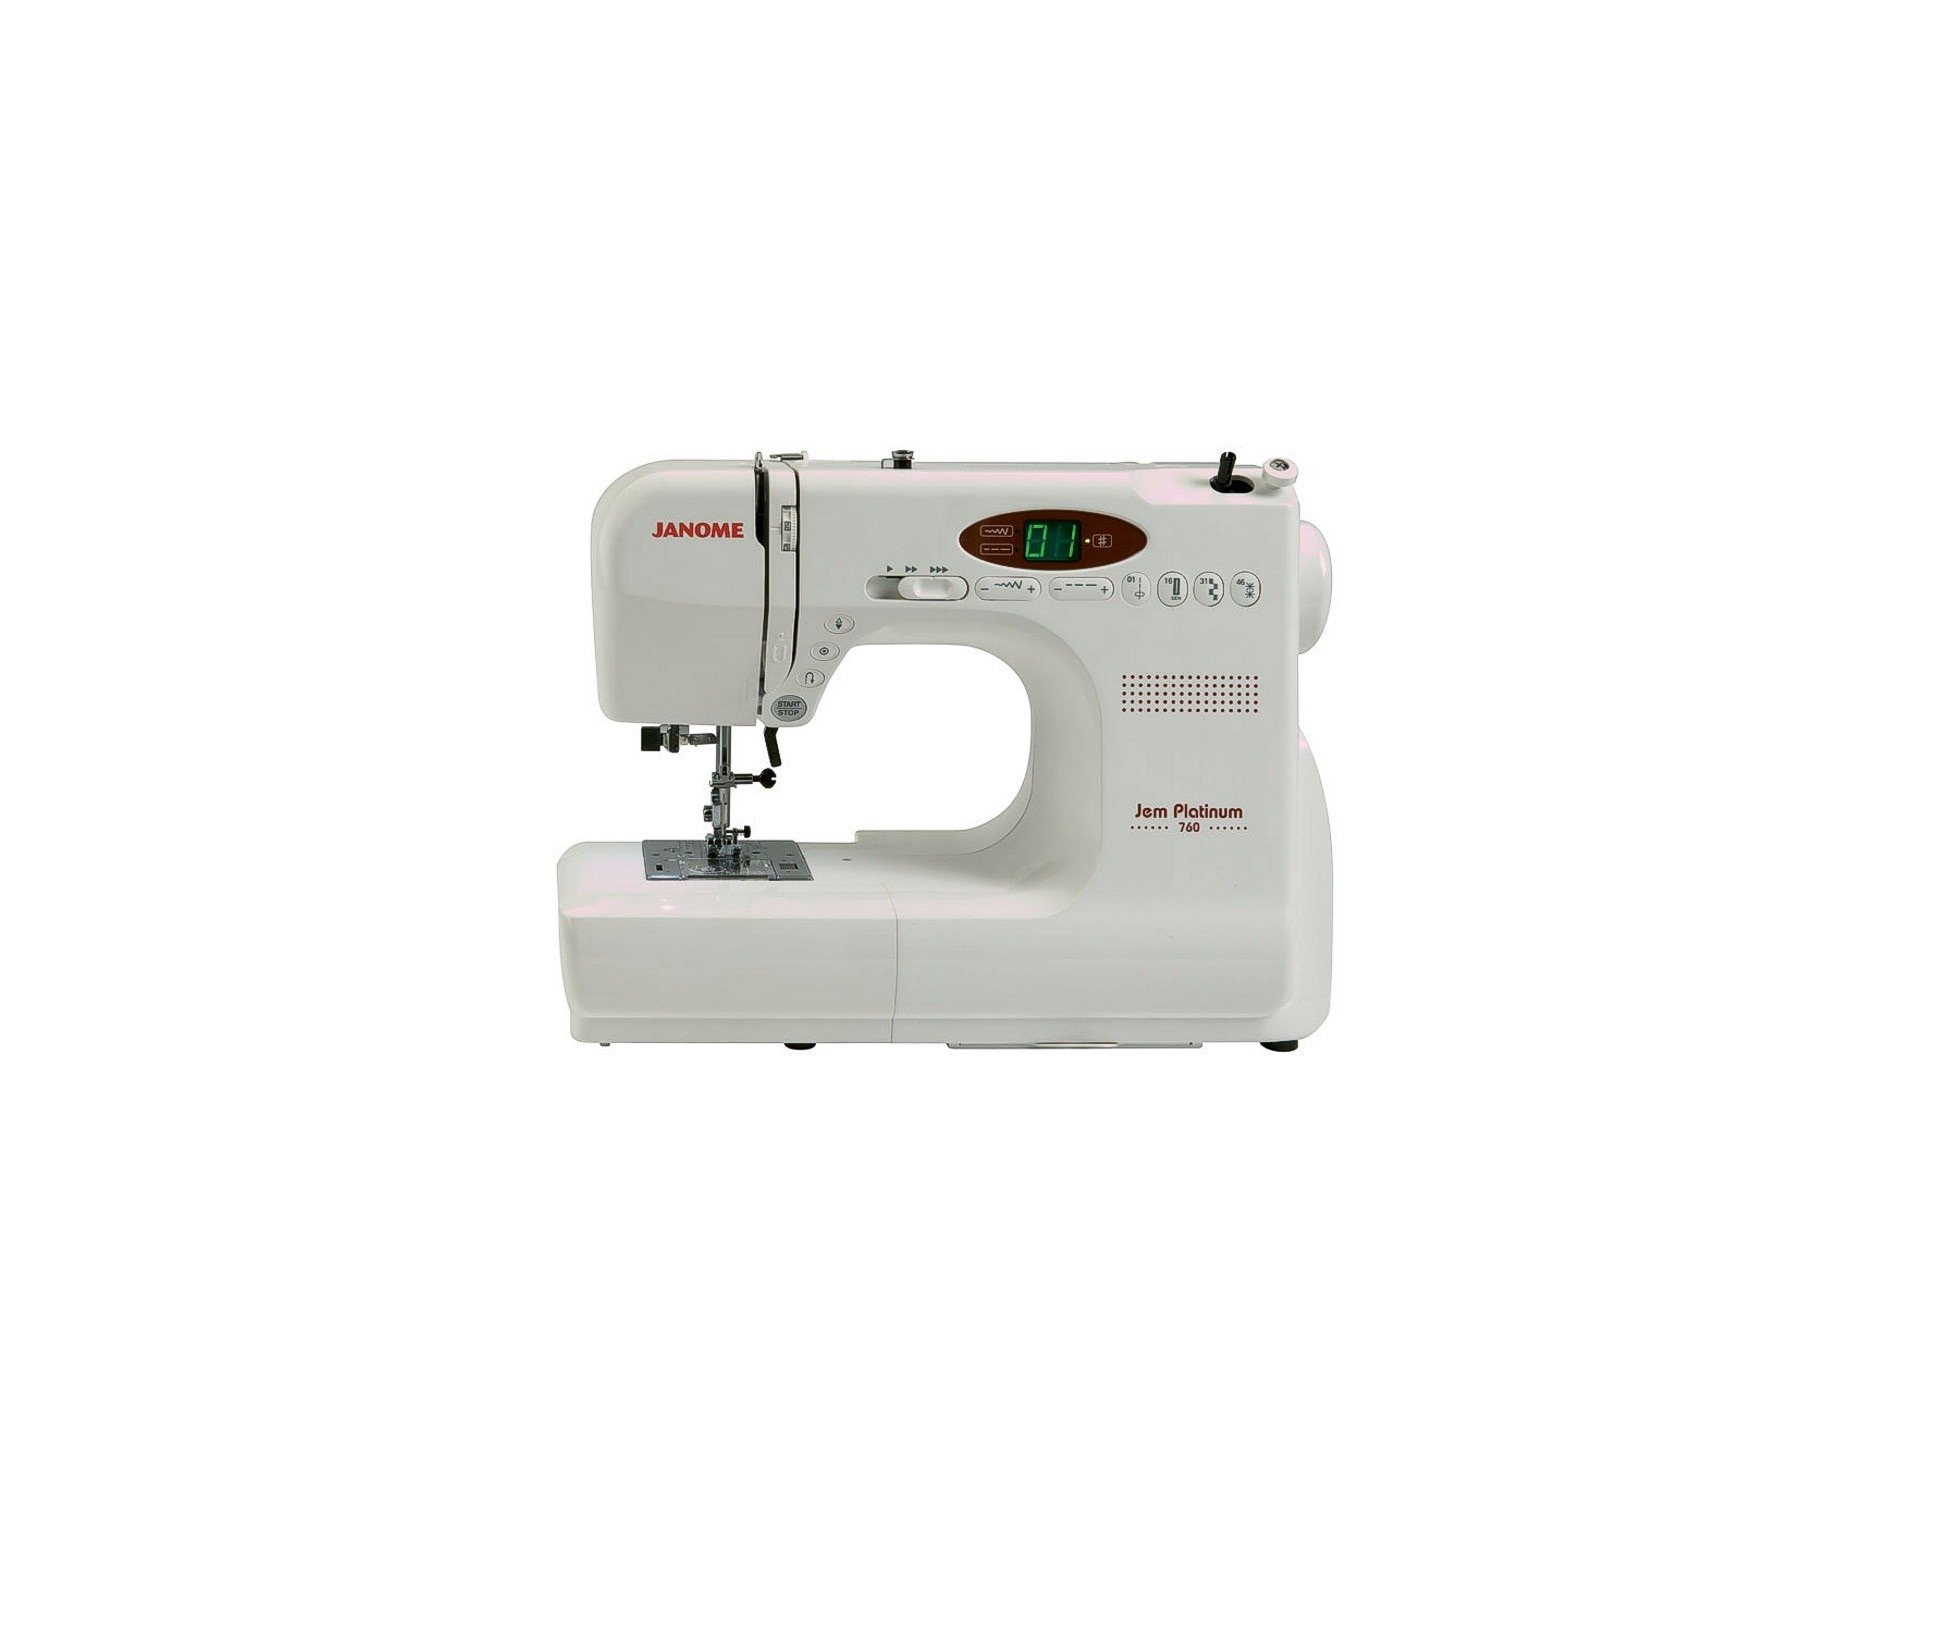 Janome JP760 Sewing Machine Stitches Built-in Buttonhle Decorative Foot Controller Control Pedal Instruction Manual Book Booklet Cheap Discount Price Spotlight Western Australia Perth